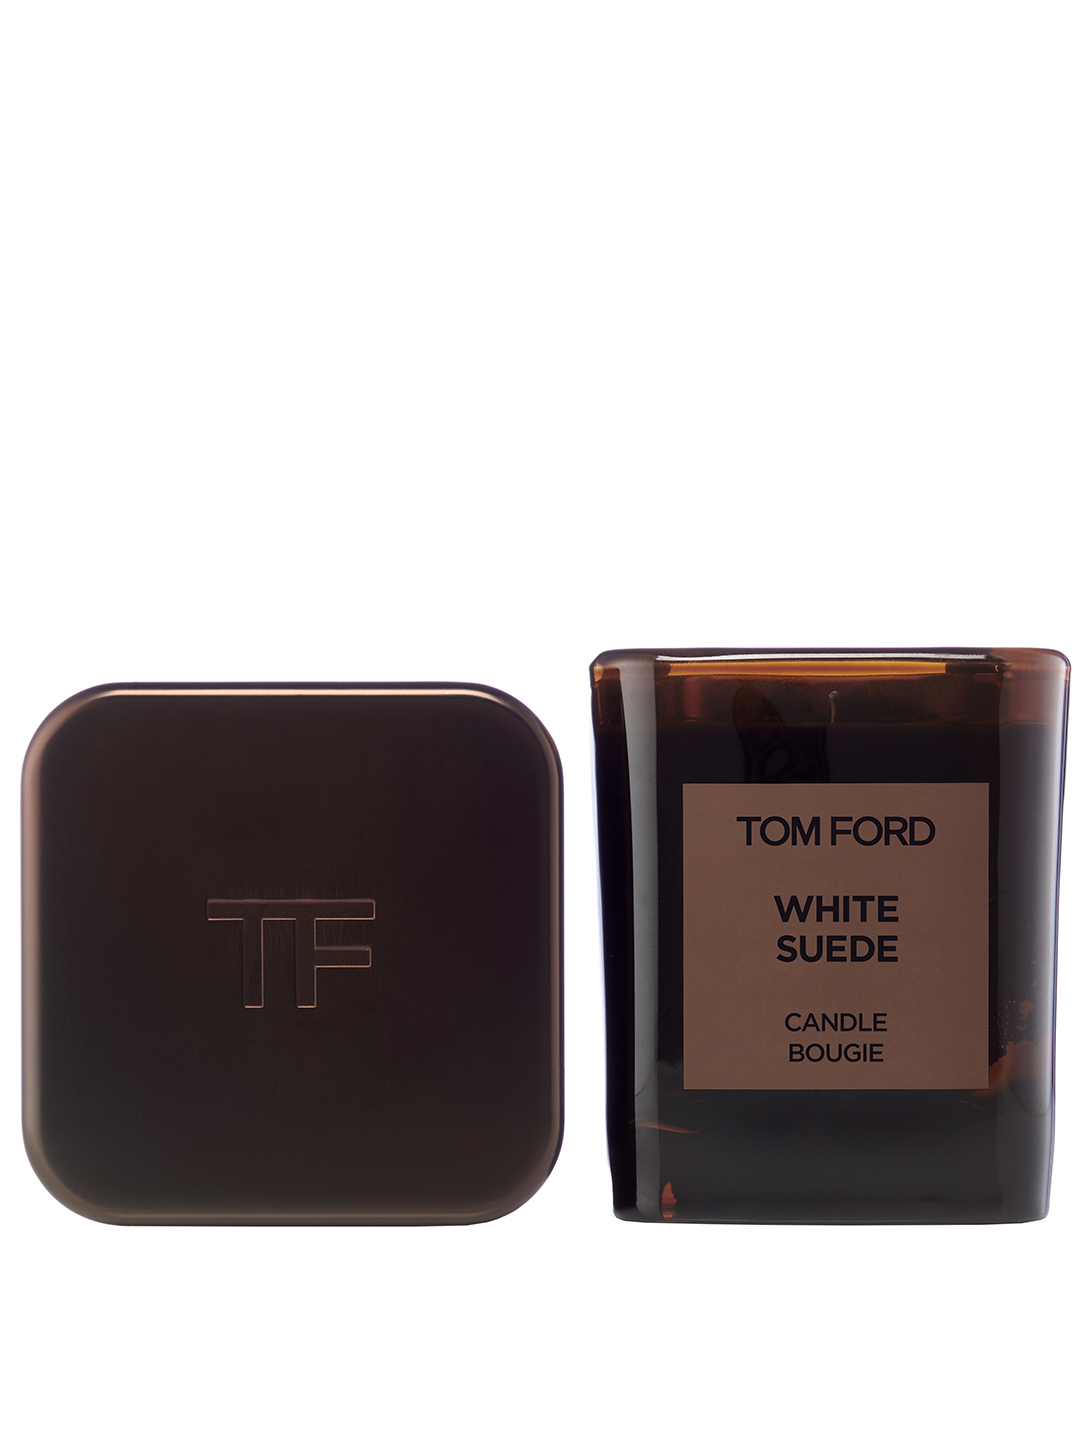 TOM FORD White Suede Private Blend Candle Beauty